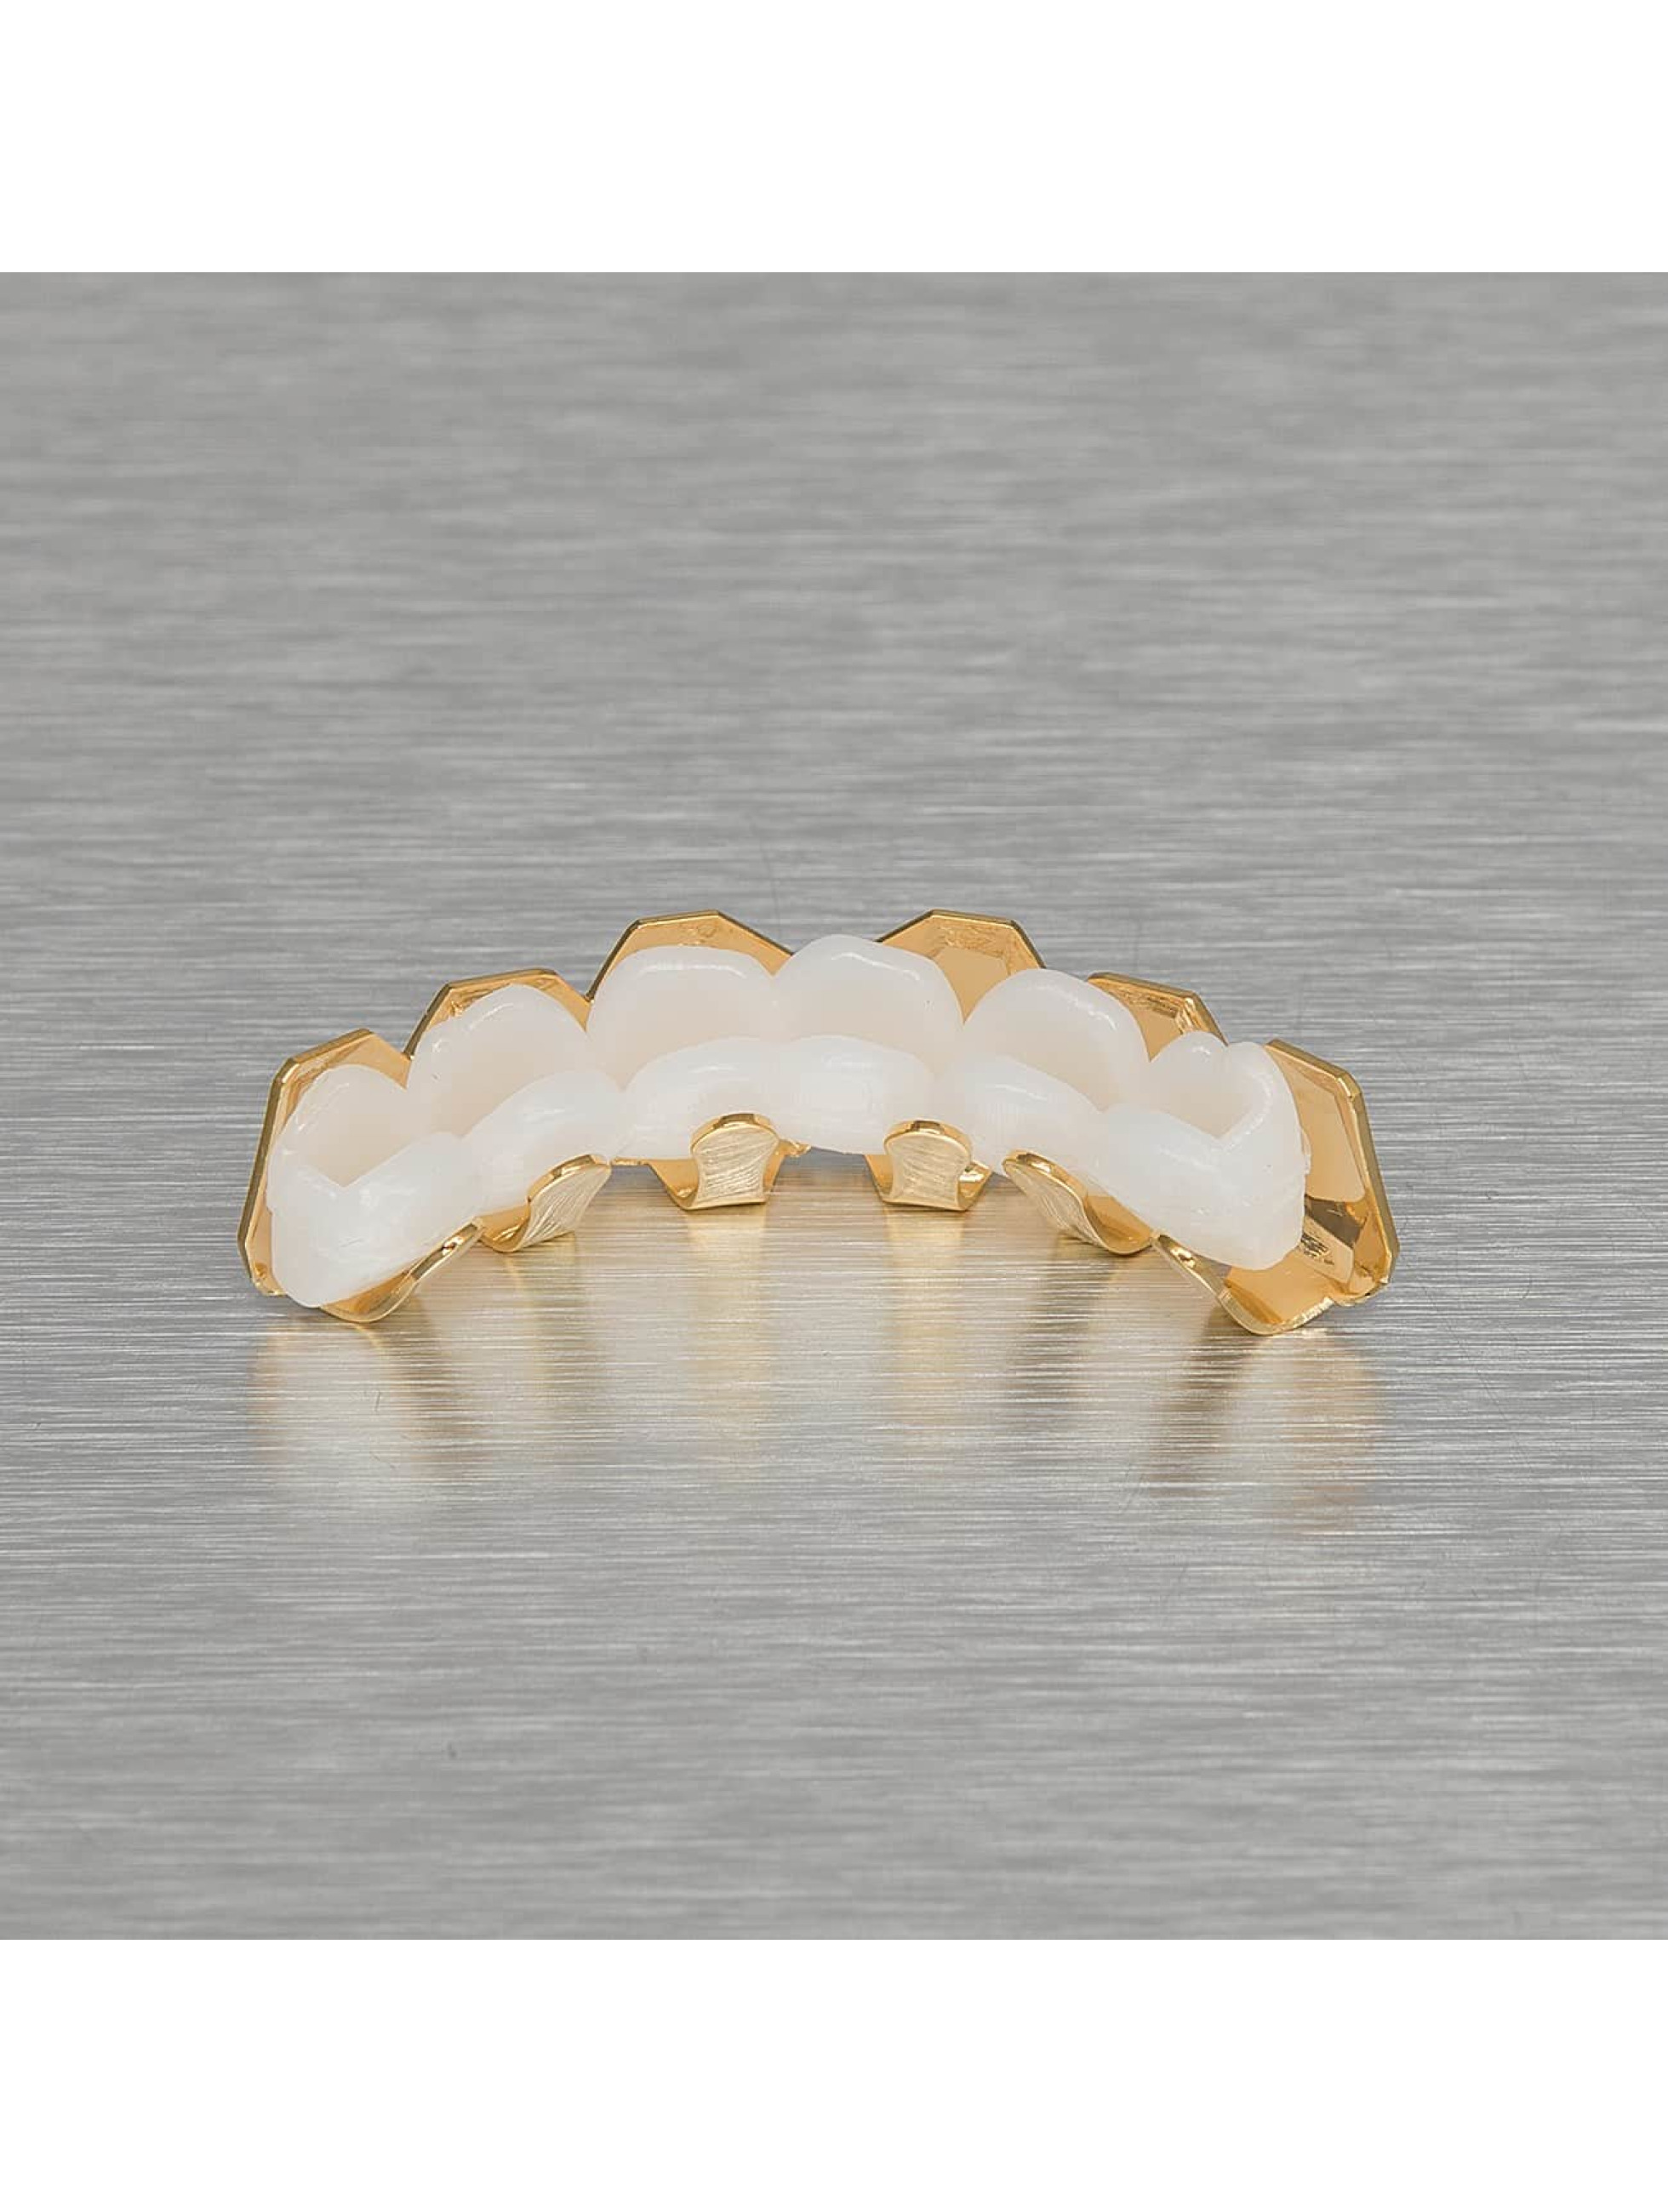 KING ICE More Plain Bevel Edge gold colored